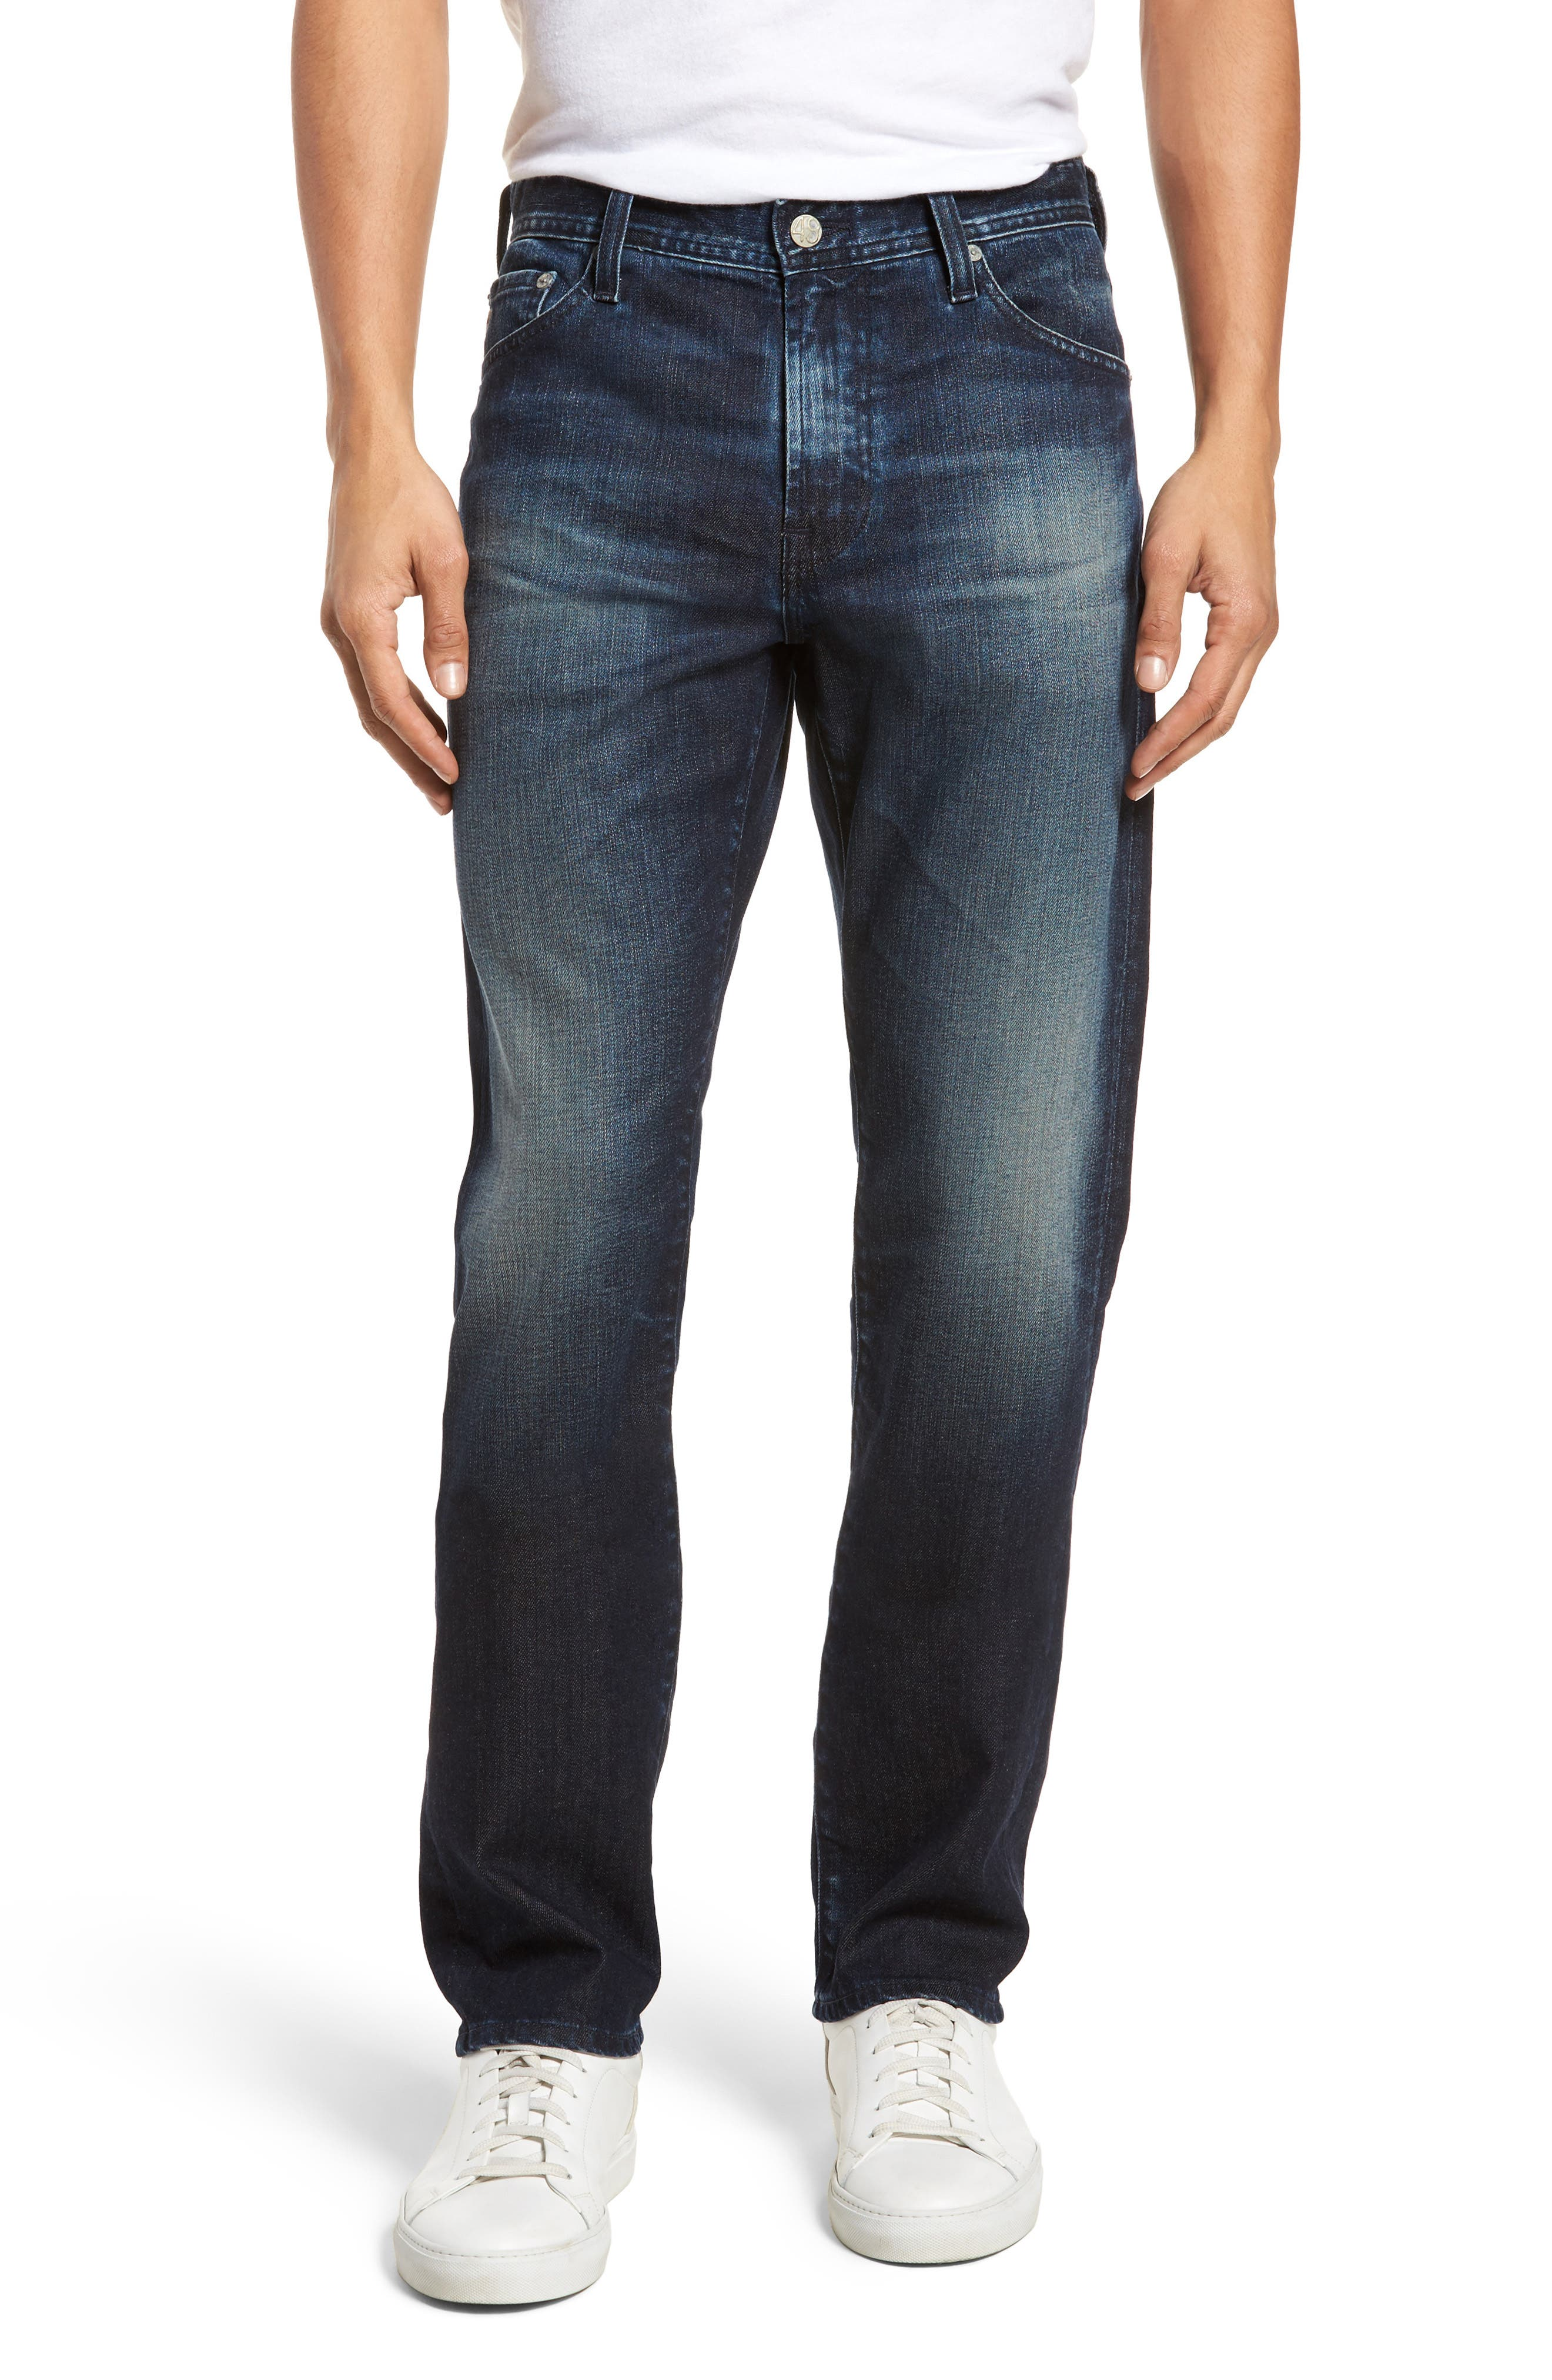 Everett Slim Straight Fit Jeans,                         Main,                         color, 3 Years Trentwood